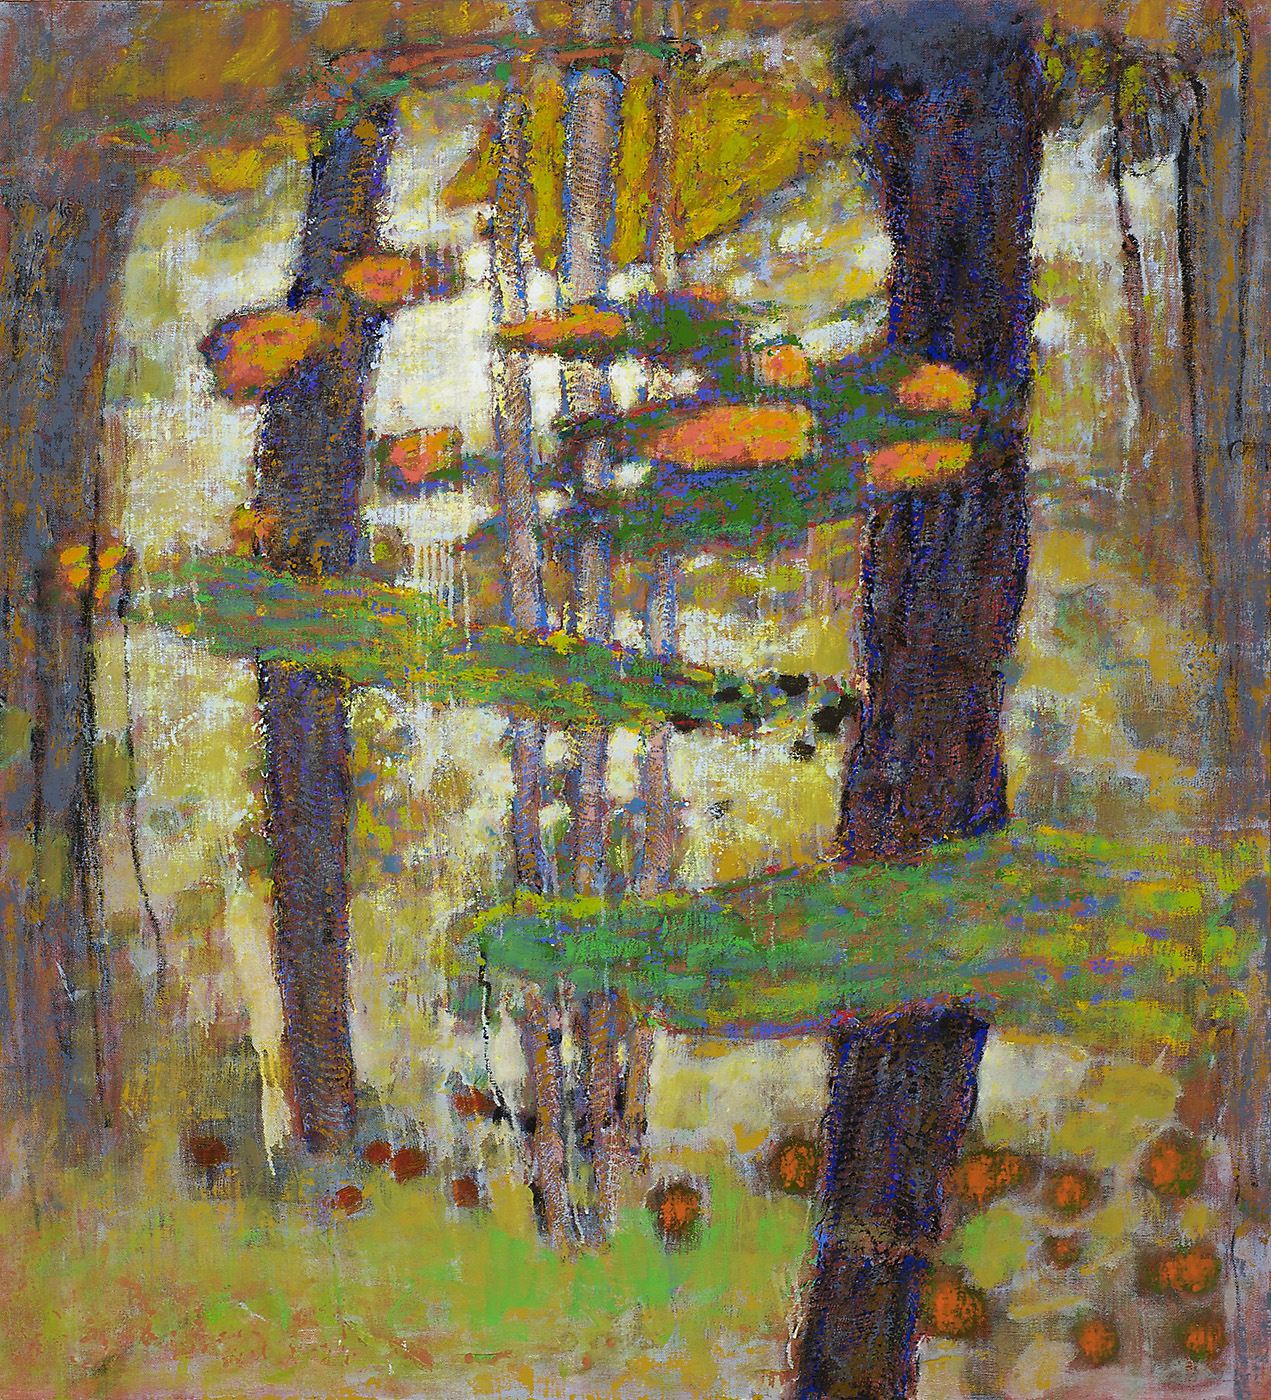 When All Was Wild II   | oil on canvas | 40 x 36"